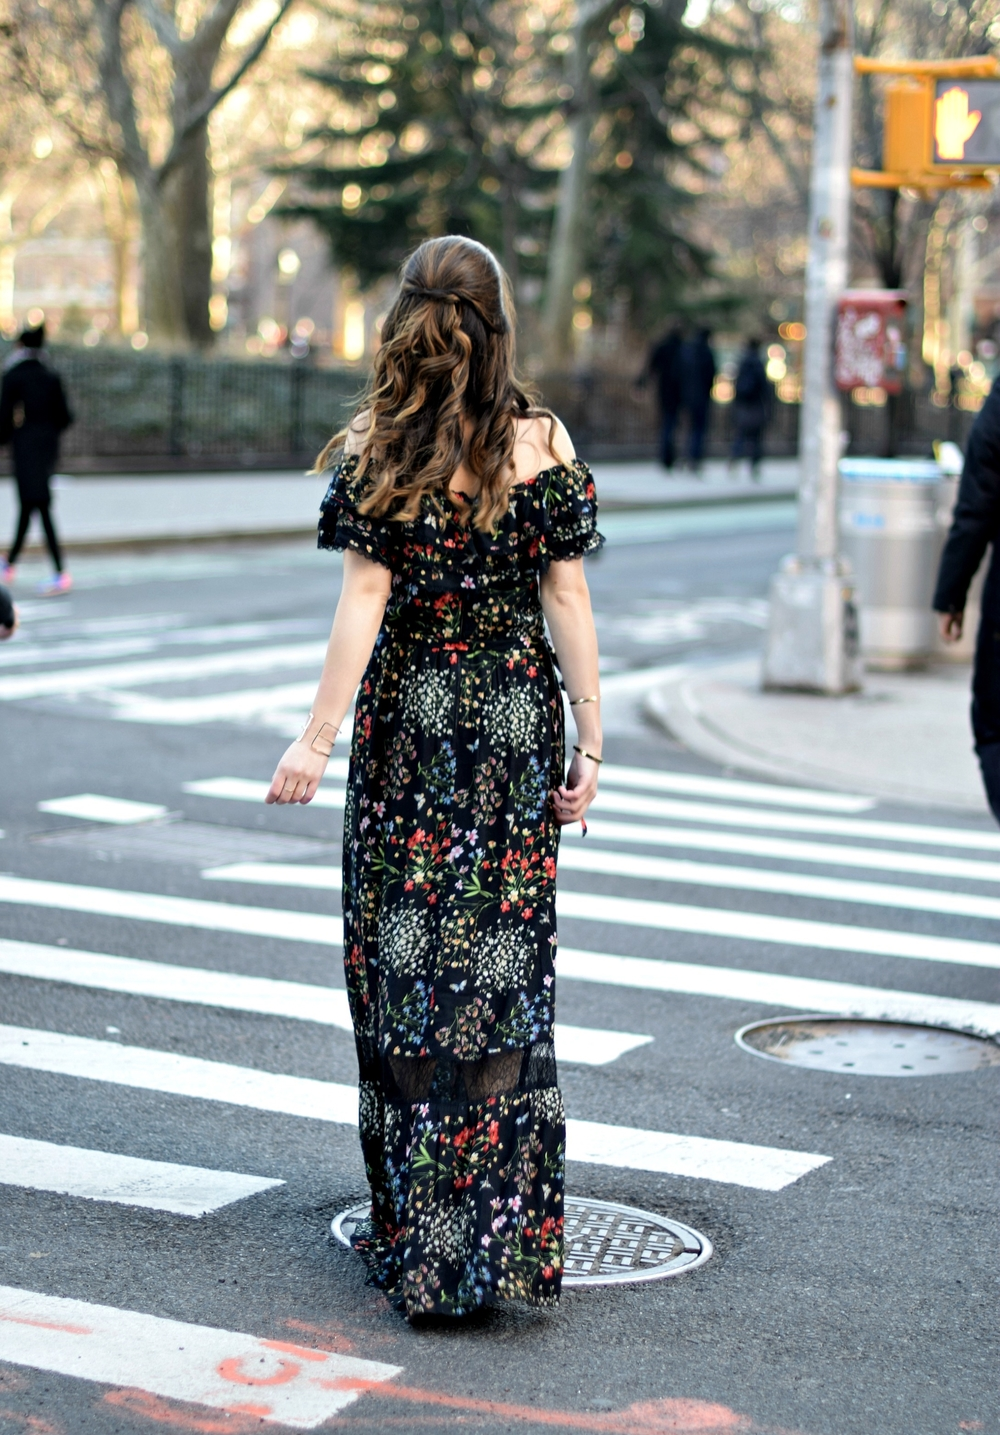 Alice Olivia Floral Dress Louboutins & Love Fashion Blog Esther Santer NYC Street Style Blogger Outfit OOTD Trunk Club Lydell Hair Brunette Model New York City Photoshoot Spring Summer Bracelet Gold Choker Jewelry Beautiful Pretty Shoulder Shoes Inspo.jpg